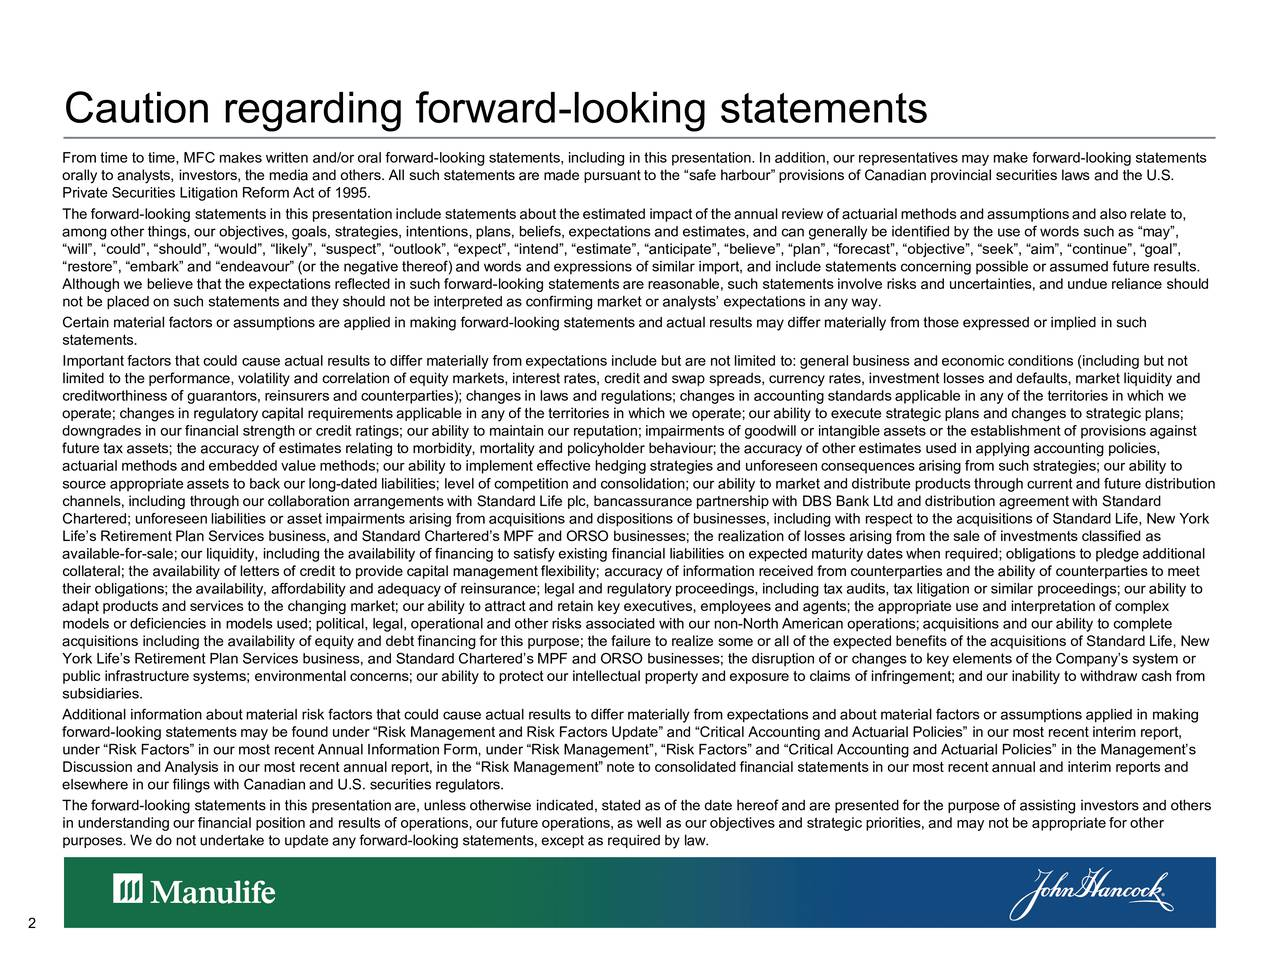 From time to time, MFC makes written and/or oral forward-looking statements, including in this presentation. In addition, our representatives may make forward-looking statements orally to analysts, investors, the media and others. All such statements are made pursuant to the safe harbour provisions of Canadian provincial securities laws and the U.S. Private Securities Litigation Reform Act of 1995. The forward-looking s tatements in this presentationincludestatementsabouttheestimatedimpactoftheannualreviewofac tuarialmethodsandassumptionsandalso relate to, among other things, our objectives, goals, strategies, intentions, plans, beliefs, expectations and estimates, and can generally be identified by the use of words such as may, will, could, should, would, likely, suspect, outlook, expect, intend, estimate, anticipate, believe, plan, forecast, objective, seek, aim, continue, goal, restore, embark and endeavour (or the negative thereof) and words and expressions of similar import, and include statements concerning possible or assumed future results. Although we believe that the expectations reflected in such forward-looking statements are reasonable, such statements involve risks and uncertainties, and undue reliance should not be placed on such statements and they should not be interpreted as confirming market or analysts expectations in any way. Certain material factors or assumptions are applied in making forward-looking statements and actual results may differ materially from those expressed or implied in such statements. Important factors that could cause actual results to differ materially from expectations include but are not limited to: general business and economic conditions (including but not limited to the performance, volatility and correlation of equity markets, interest rates, credit and swap spreads, currency rates, investment losses and defaults, market liquidity and creditworthiness of guarantors, reinsurers and counterparties); changes in laws and regulations; changes in accounting standardsapplicable in any of the territories in which we operate; changes in regulatory capital requirements applicable in any of the territories in which we operate; our ability toexecute strategic plans and changes to strategic plans; downgrades in our financial strength or credit ratings; our ability to maintain our reputation; impairments of goodwill or intangible assets or the establishment of provisions against future tax assets; the accuracy of estimates relating to morbidity, mortality and policyholder behaviour; the accuracy of other estimates used in applying accounting policies, actuarial methods and embedded value methods; our ability to implement effective hedging strategies and unforeseen consequences arising from such strategies; our ability to source appropriate assets to back our long-dated liabilities; level of competition and consolidation; our ability to market and distribute products through current and future distribution channels, including through our collaboration arrangements with Standard Life plc, bancassurance partnership with DBS Bank Ld t and distribution agreement with Standard Chartered; unforeseen liabilities or asset impairments arising from acquisitions and dispositions of businesses, including with respect to the acquisitions of Standard Life, New York Lifes Retirement Plan Services business, and Standard Chartereds MPF and ORSO businesses; the realization of losses arisingfrom the sale of investments classified as available-for-sale; our liquidity, including the availability of financing to satisfy existing financial liabilities on expected maturity dates when required; obligations to pledge additional collateral; the availability of letters of credit to provide capital management flexibility; accuracy of information received from counterparties and the ability of counterparties to meet their obligations; the availability, affordability and adequacy of reinsurance; legal and regulatory proceedings, including tax audits, tax litigation or similar proceedings; our ability to adapt products and services to the changing market; our ability to attract and retain key executives, employees and agents; the appropriate use and interpretation of complex models or deficiencies in models used; political, legal, operational and other risks associated with our non-North American operations; acquisitions and our ability to complete acquisitions including the availability of equity and debt financing for this purpose; the failure to realize some or all of the expected benefits of the acquisitions of Standard Life, New York Lifes Retirement Plan Services business, and Standard Chartereds MPF and ORSO businesses; the disruption of or changes to key elements of the Companys system or public infrastructure systems; environmental concerns; our ability to protect our intellectual property and exposure to claims of infringement; and our inability to withdraw cash from subsidiaries. Additional information about material risk factors that could cause actual results to differ materially from expectations and about material factors or assumptions applied in making forward-looking statements may be found under Risk Management and Risk Factors Update and Critical Accounting and Actuarial Policies in our most recent interim report, under Risk Factors in our most recent Annual Information Form, under Risk Management, Risk Factors and Critical Accounting and Actuarial Policies in the Managements Discussion and Analysis in our most recent annual report, in the Risk Management note to consolidated financial statements in our most recent annual and interim reports and elsewhere in our filings with Canadian and U.S. securities regulators. The forward-looking statements in this presentation are, unless otherwise indicated, stated as of the date hereof and are presented for the purpose of assisting investors and others in understanding our financial position and results of operations, our future operations, as well as our objectives and strategic priorities, and may not be appropriate for other purposes. We do not undertake to update any forward-looking statements, except as required by law. 2